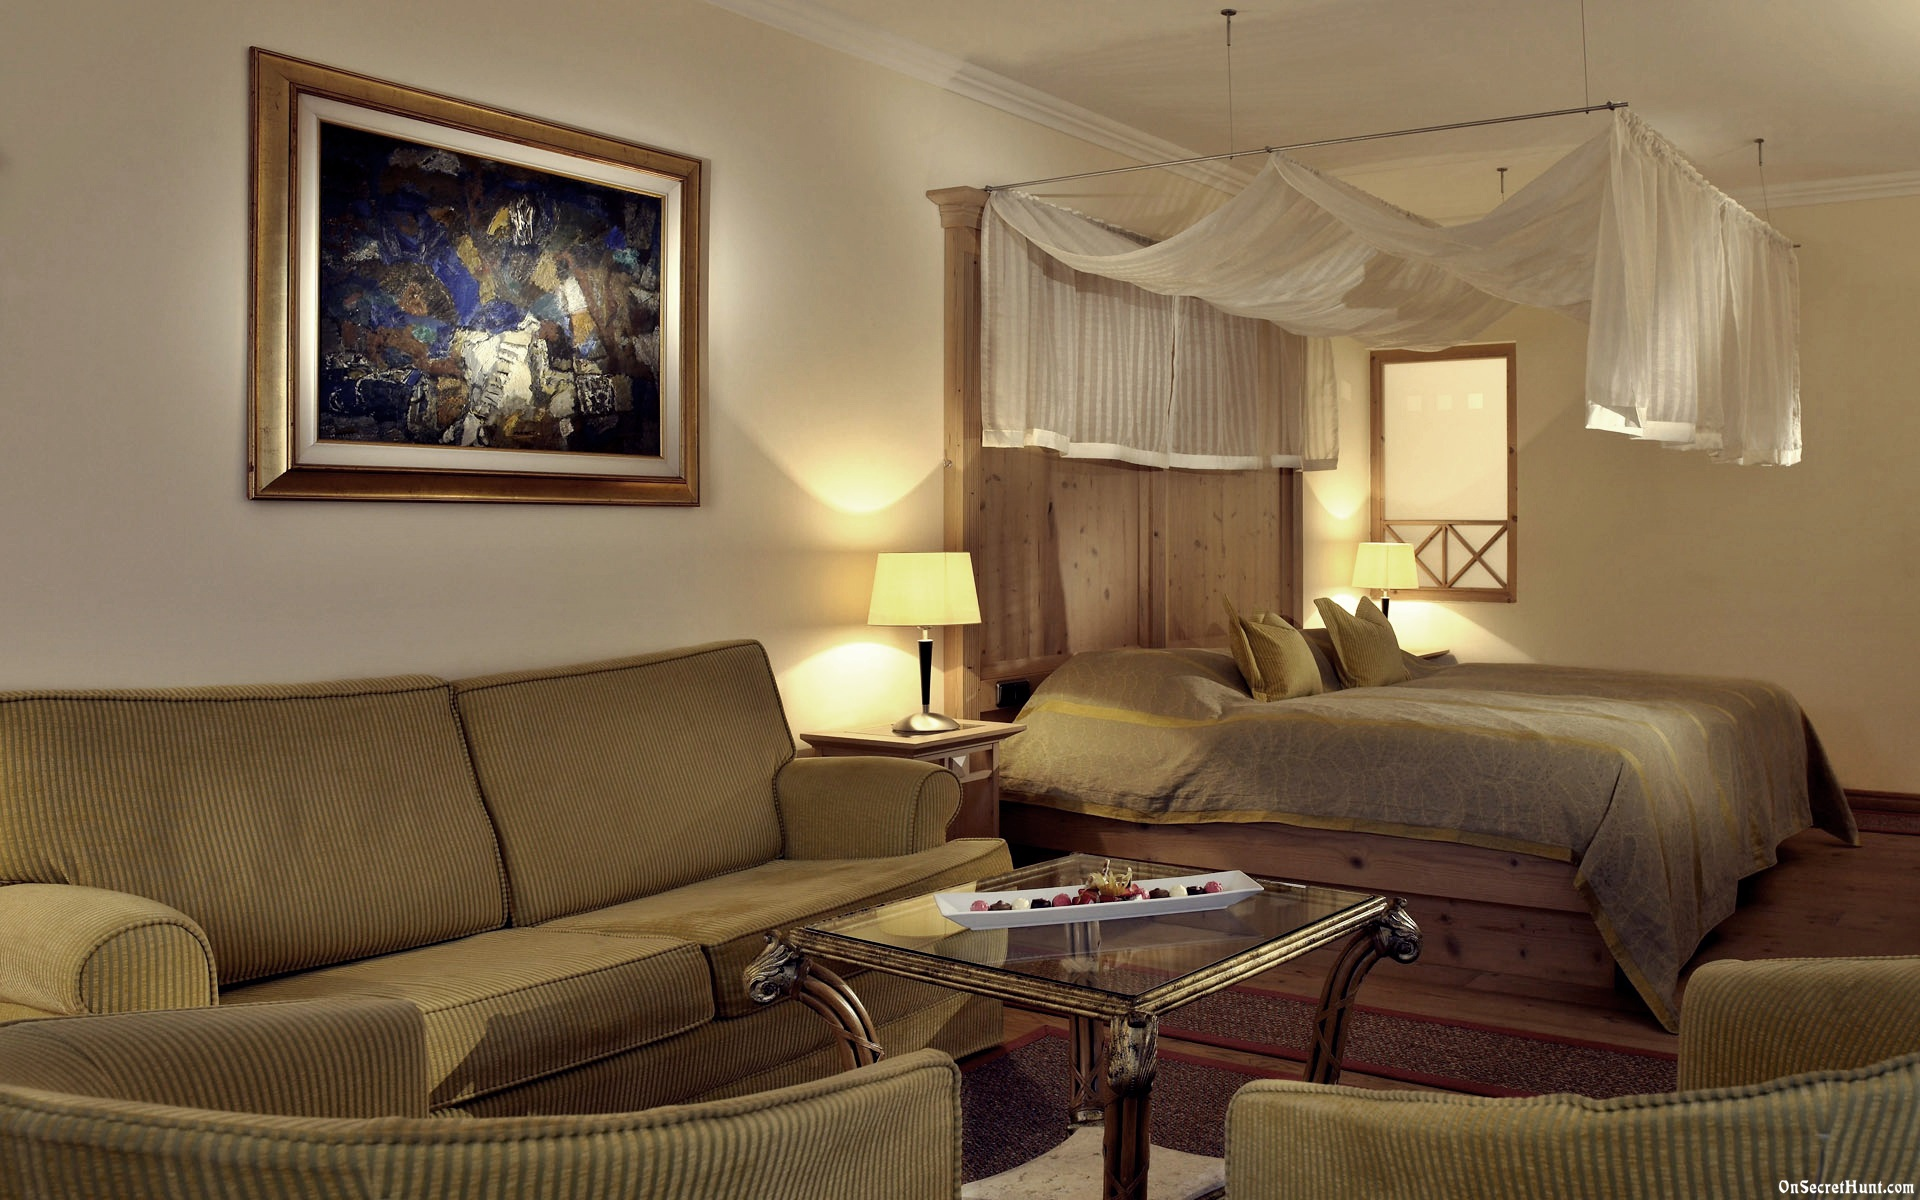 Featured Image of Hotel Inspired Fabric Bedroom With Fabric Sofa